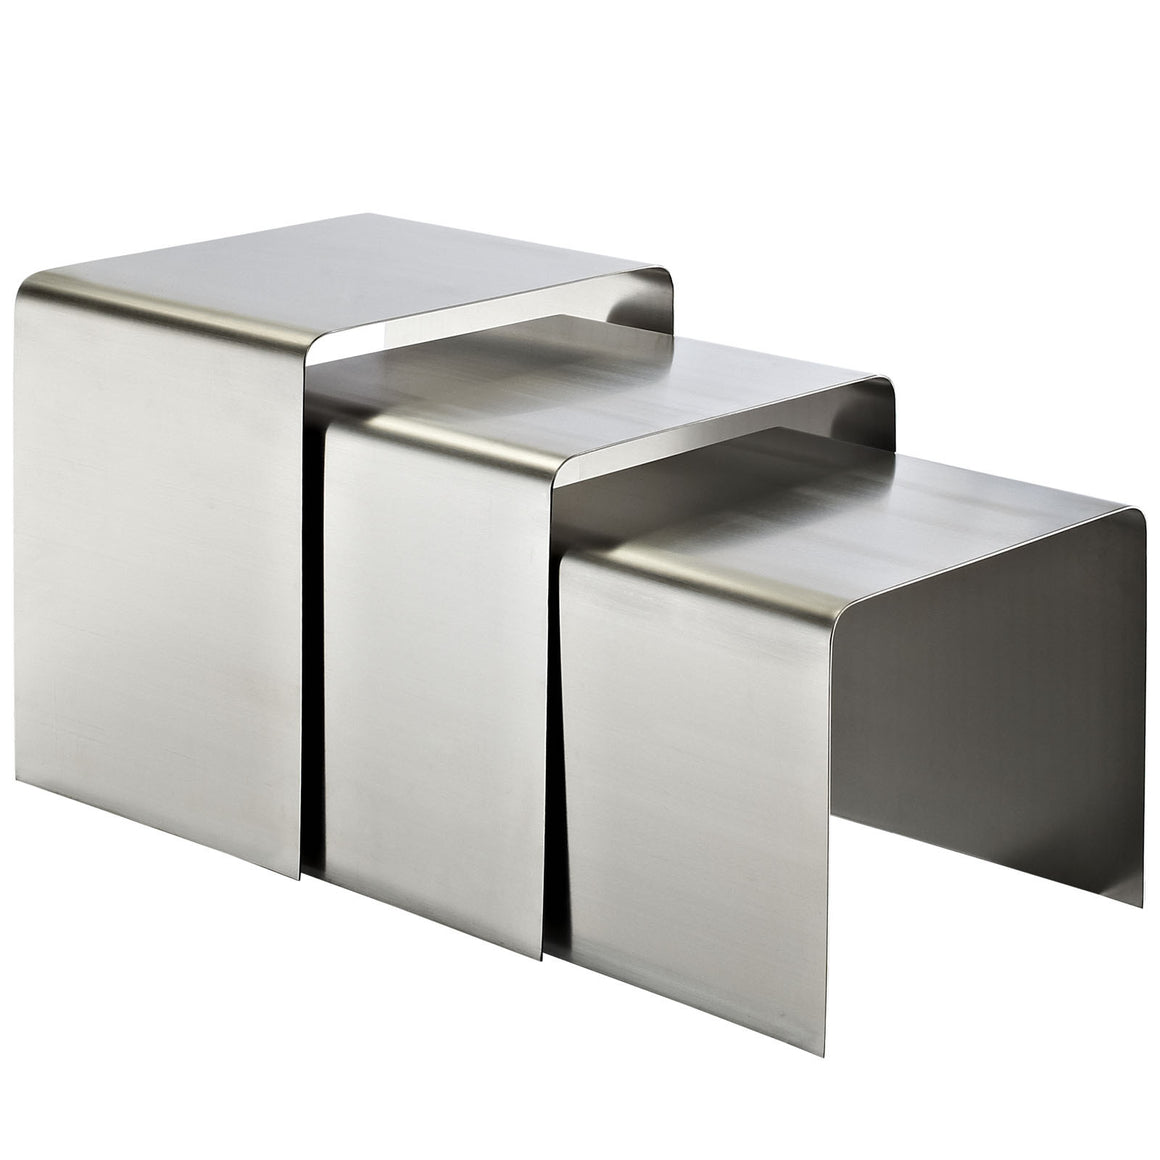 Rush Stainless Steel Nesting Tables